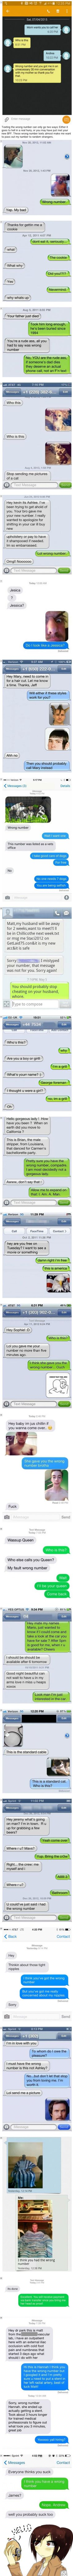 25 Wrong Number Texts That Are Pure Comedy